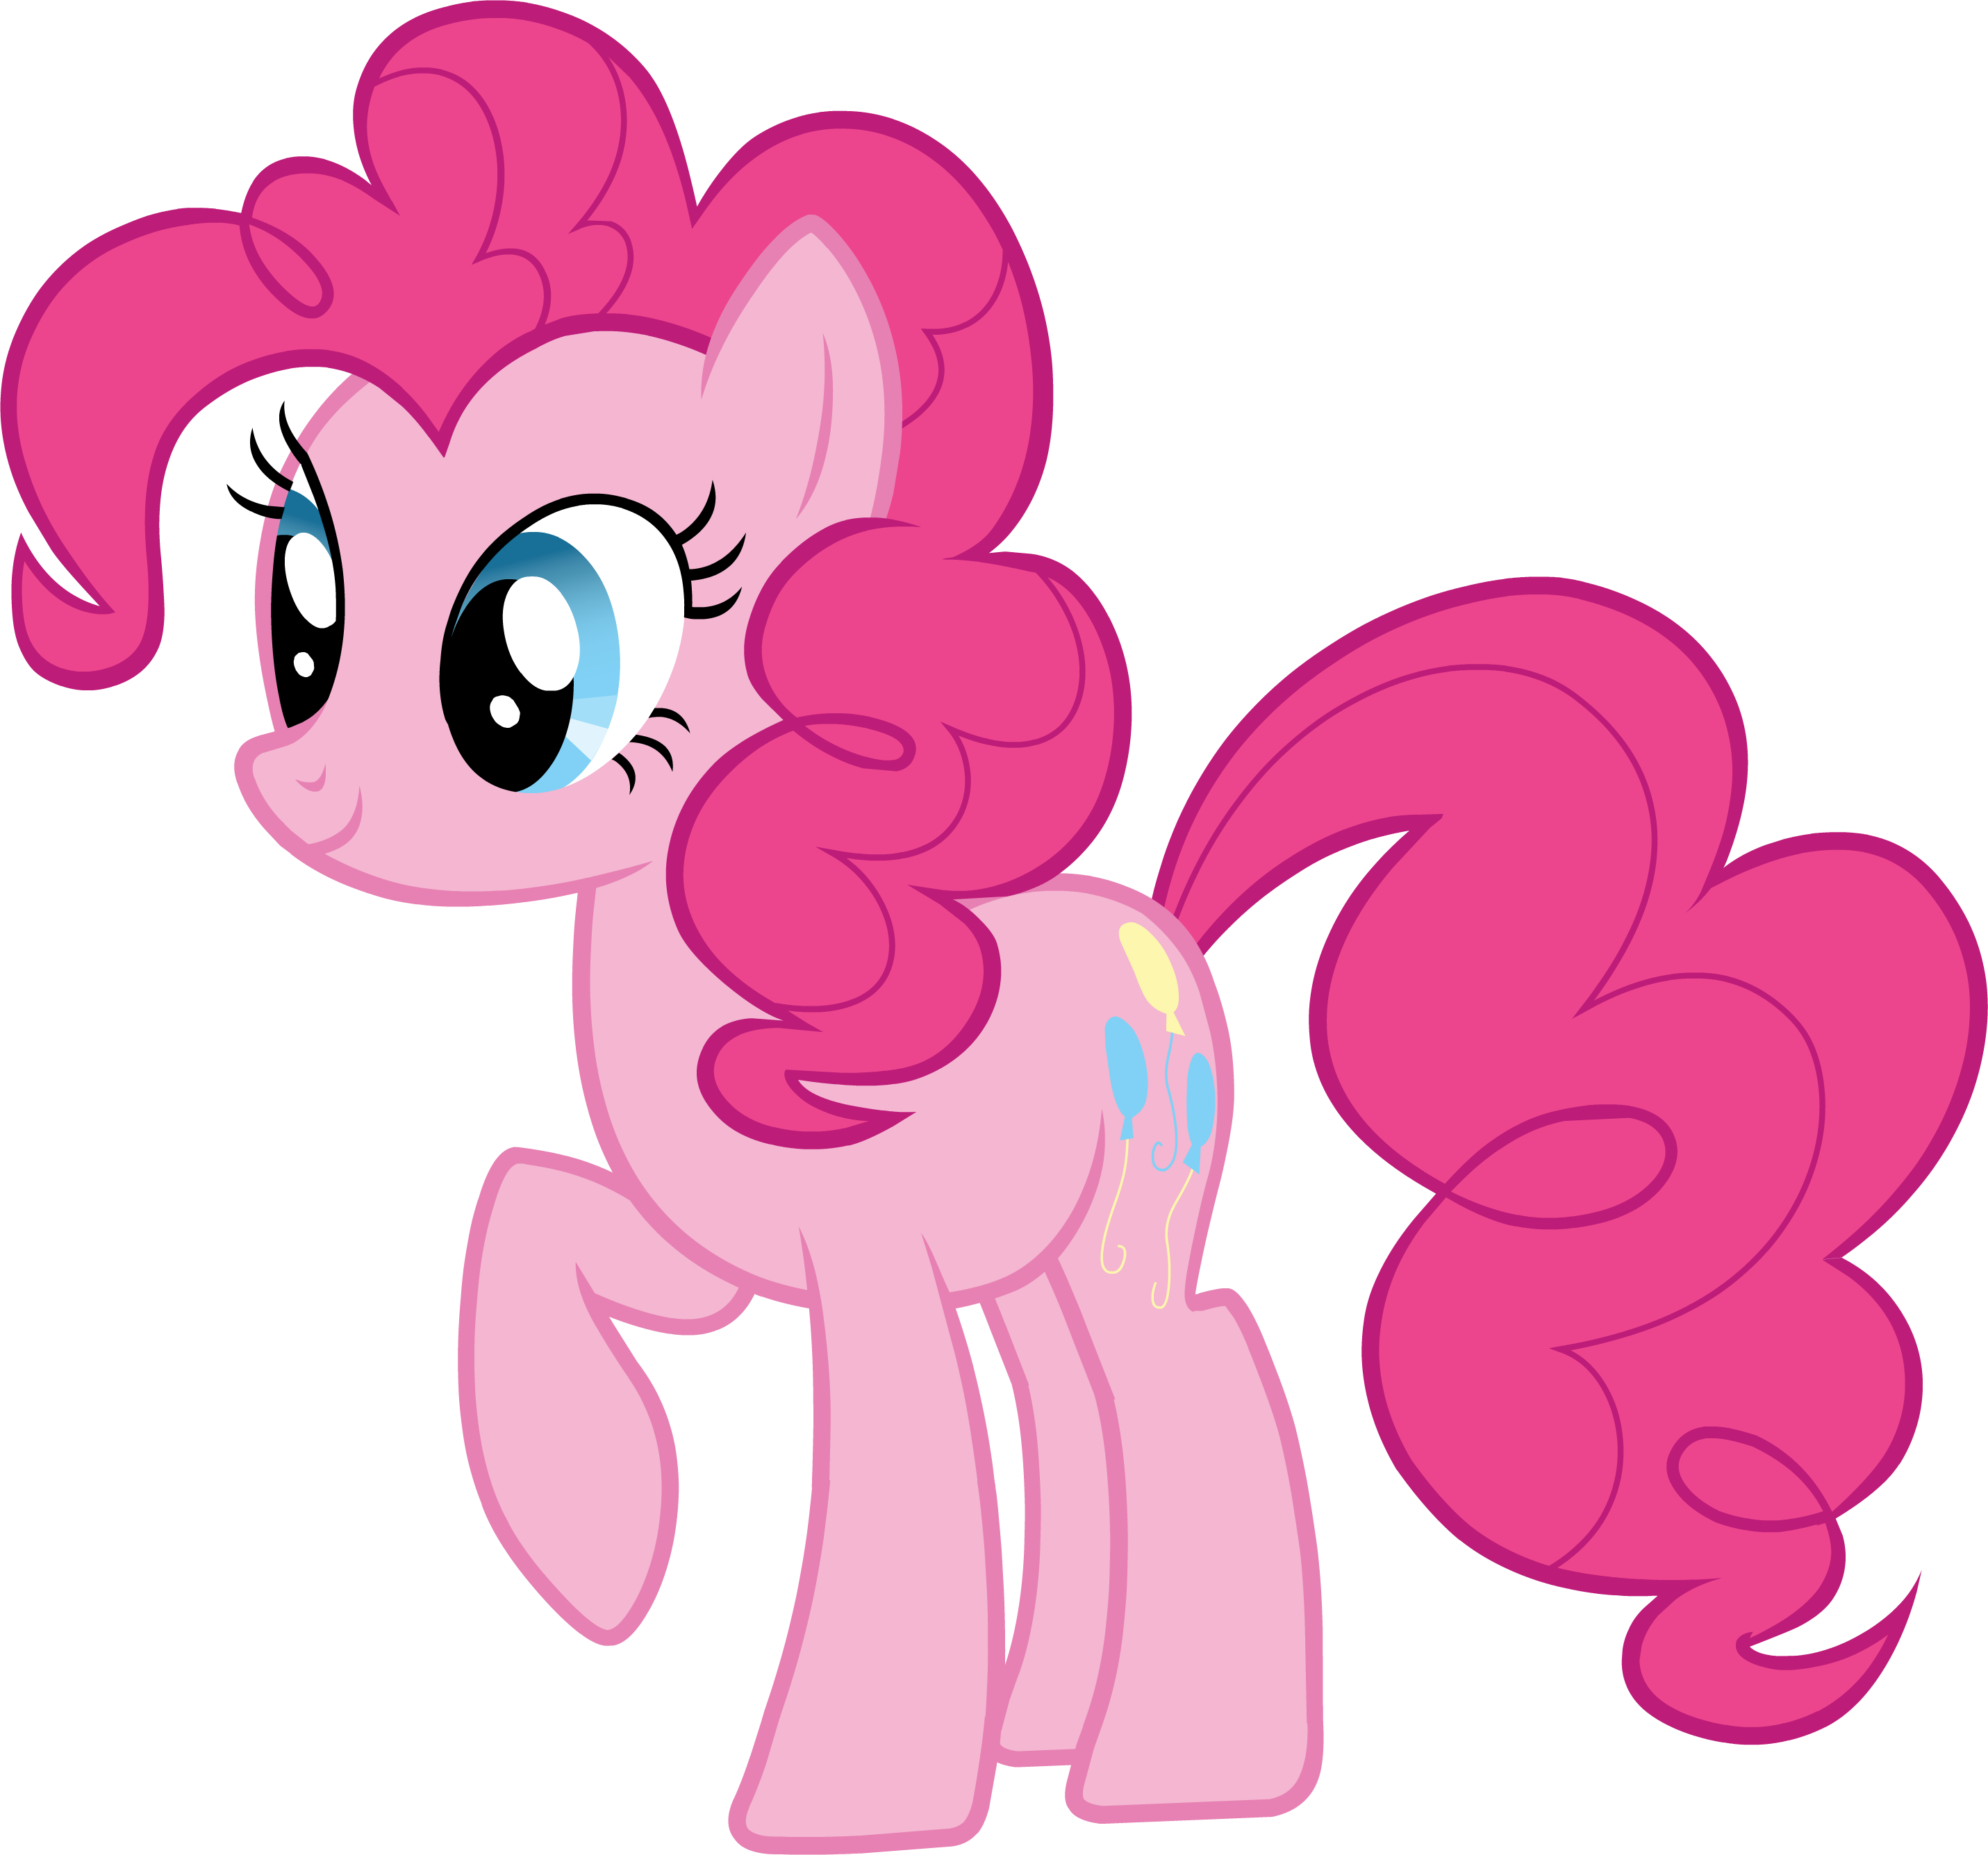 Pinkie pie letters png. Hair pinterest pies and